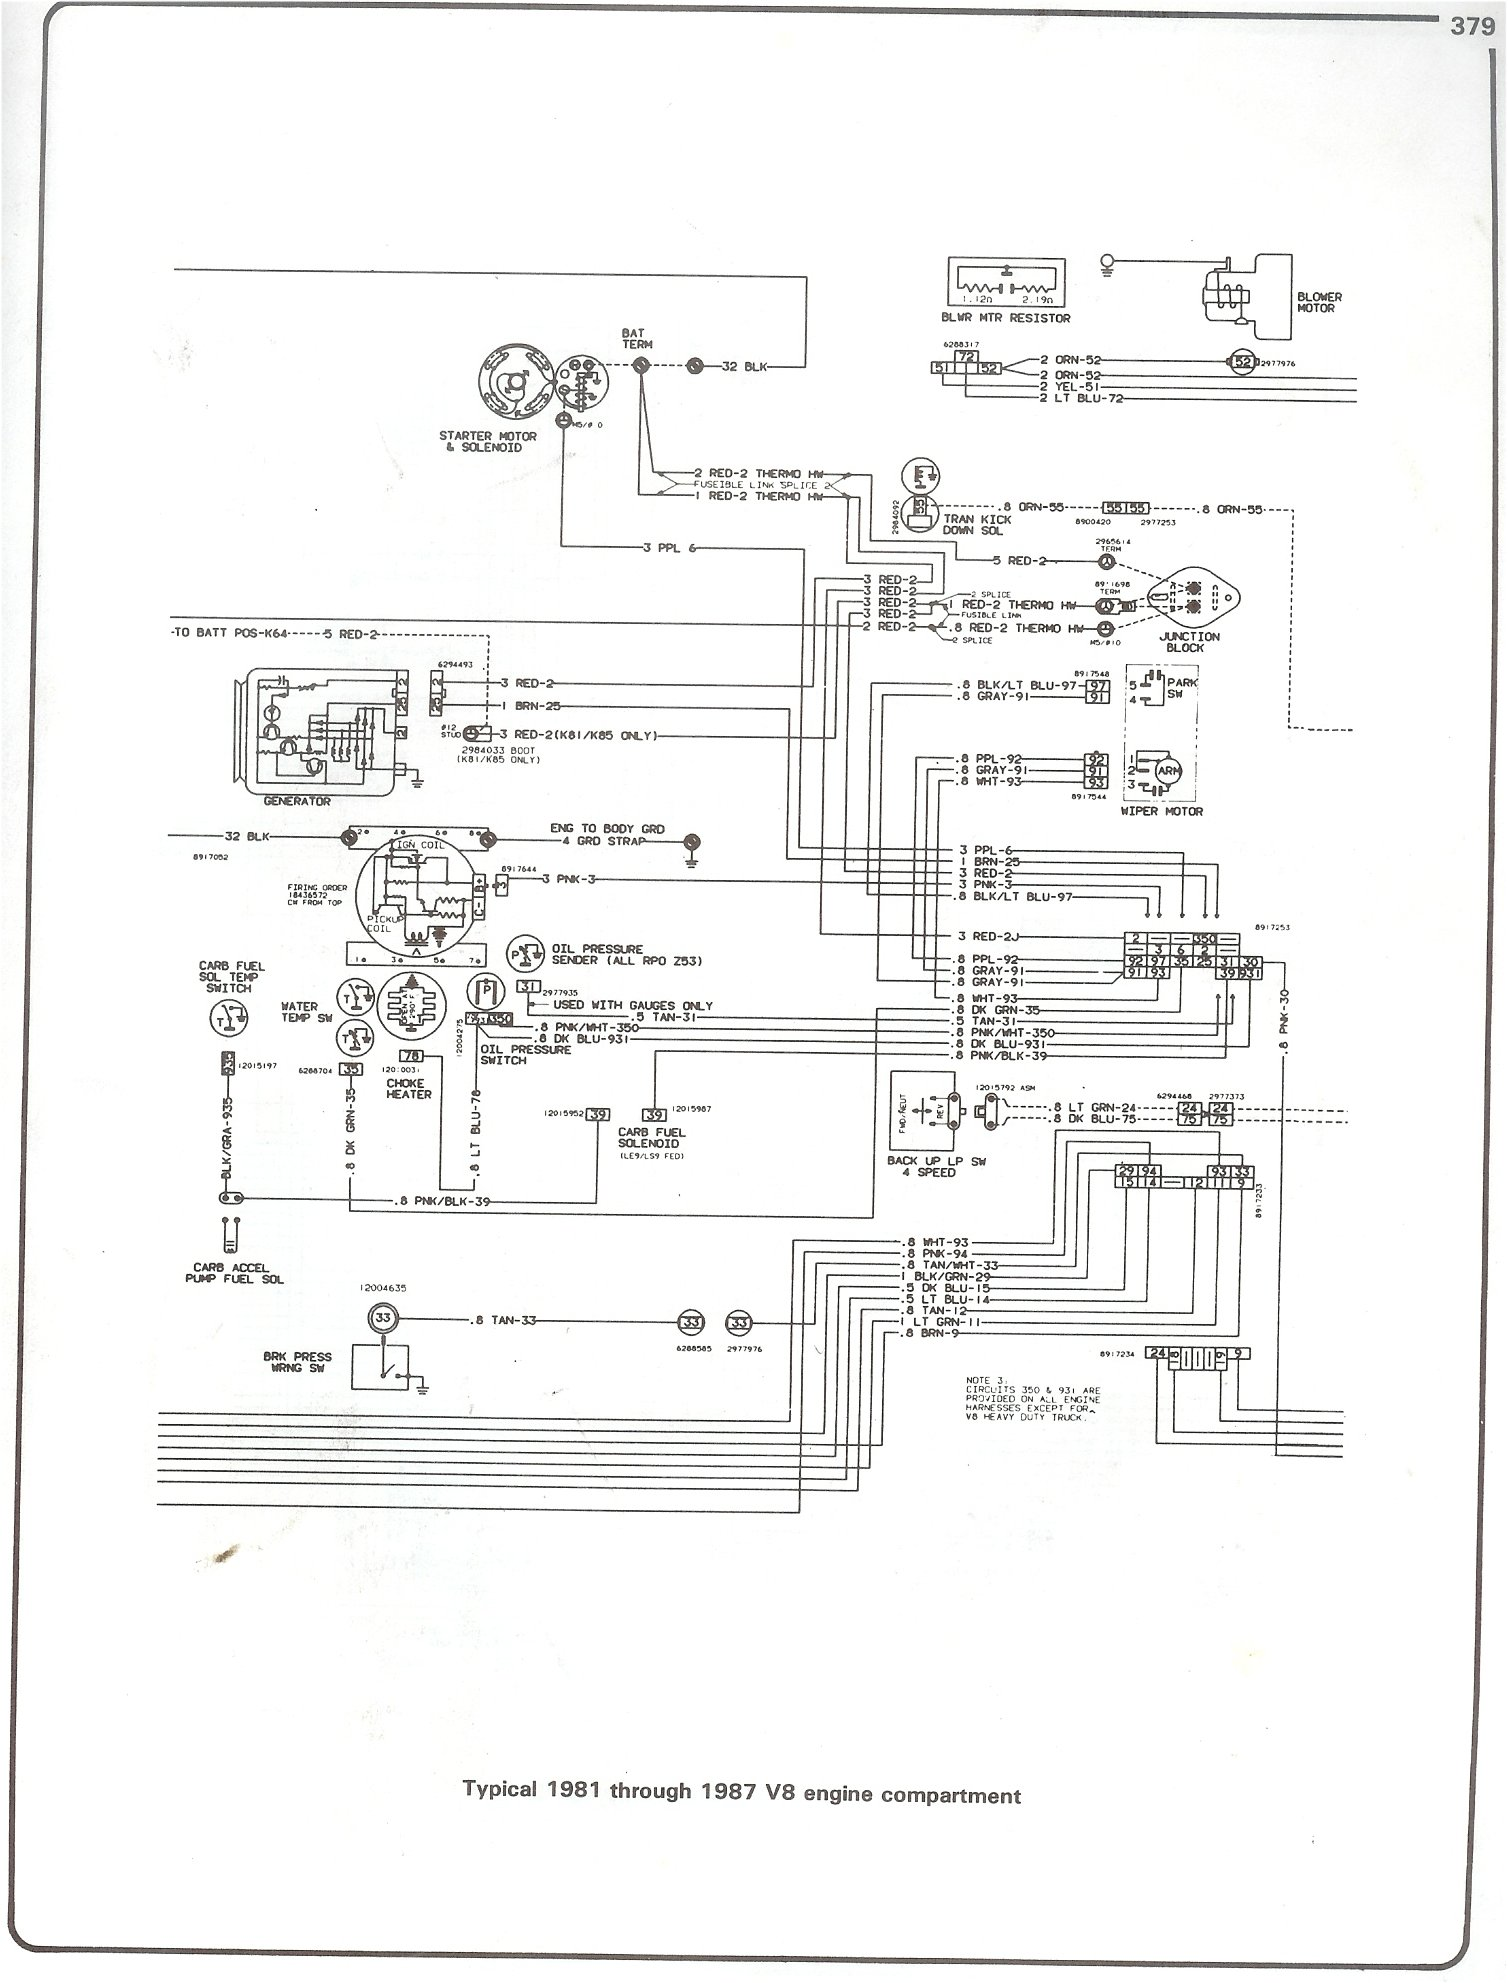 81 87_V8_engine complete 73 87 wiring diagrams 73-87 Chevy Wiring Harness at mifinder.co